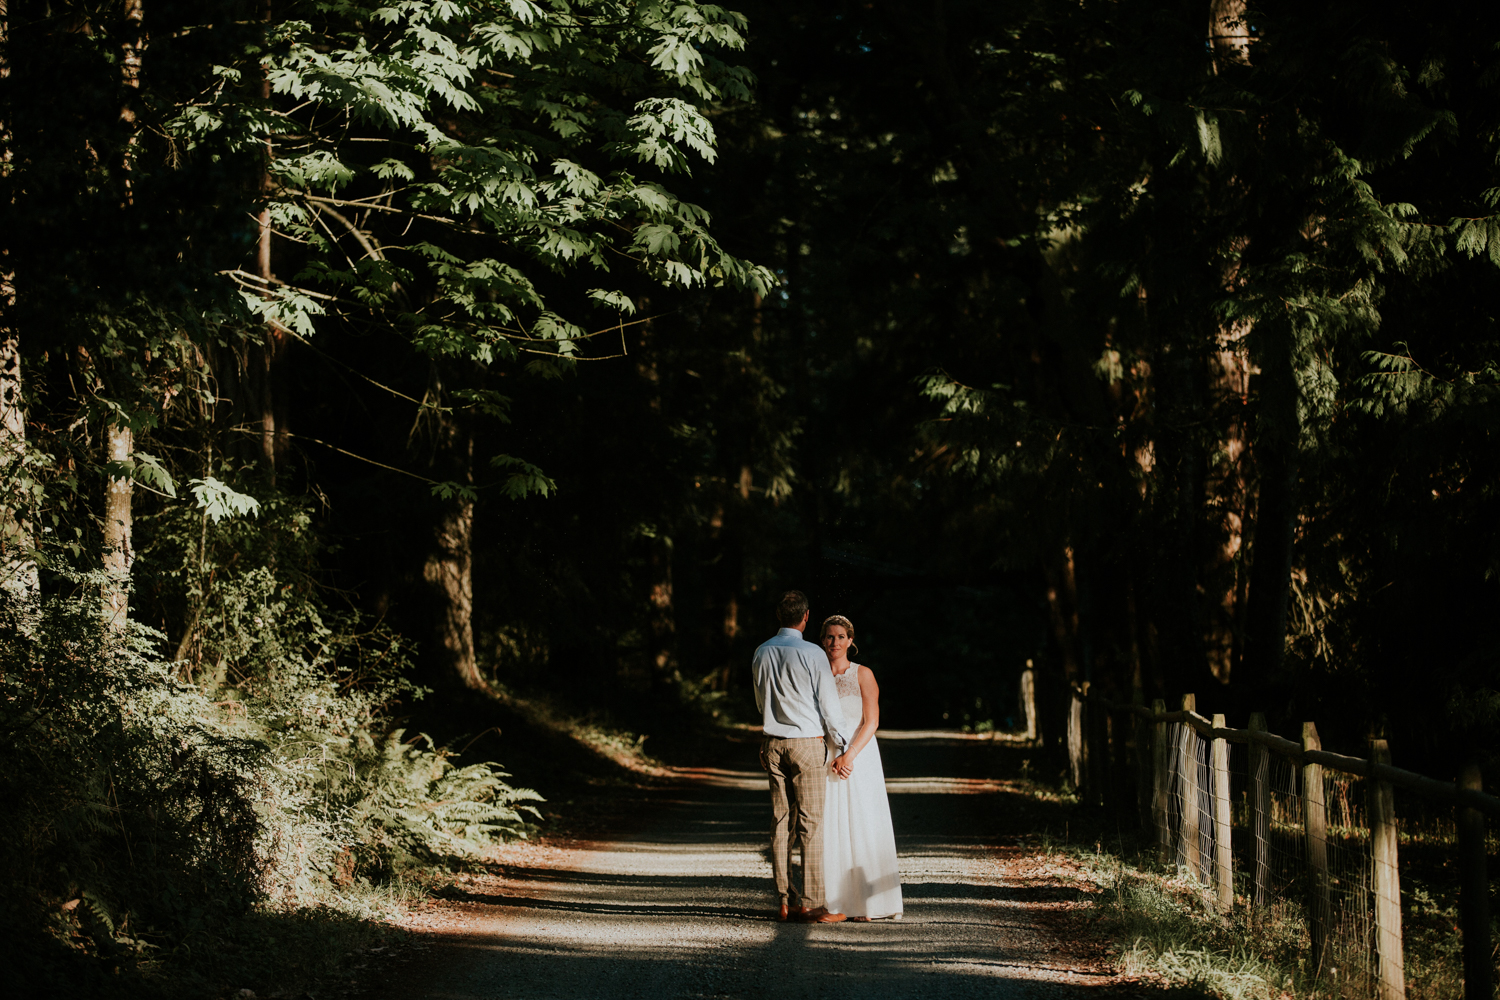 The newly wed Bride and Groom strolling King Francis Park Forest wedding ceremony Vancouver Island